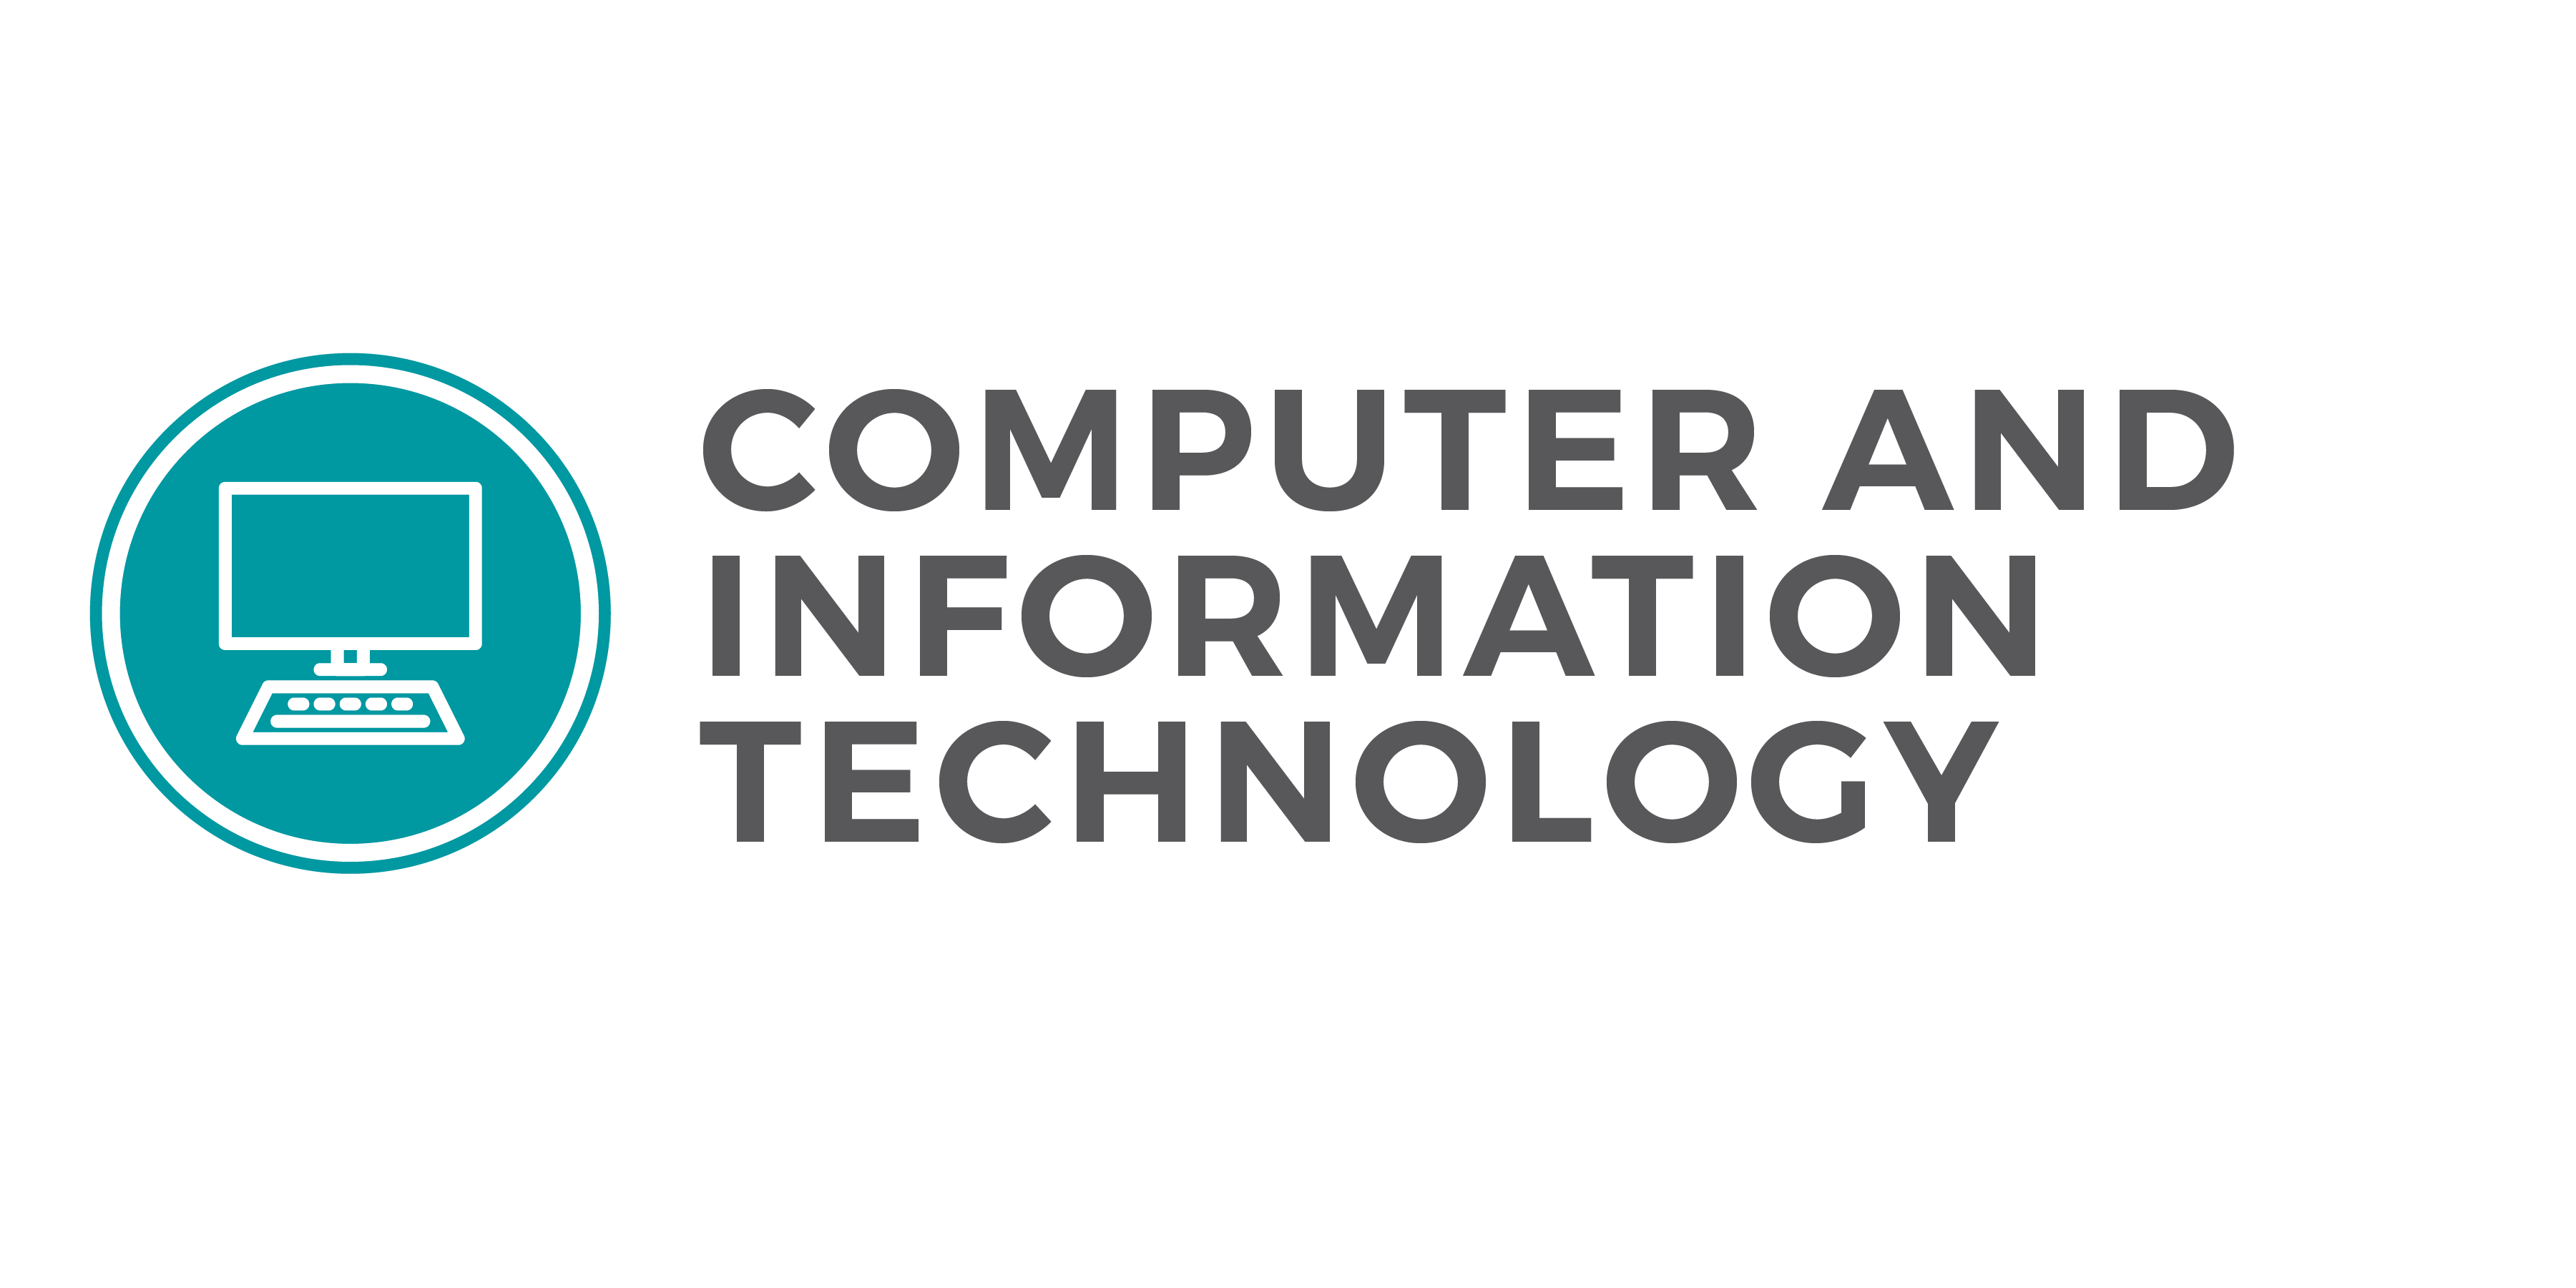 Computer and Information Technology Field of Interest